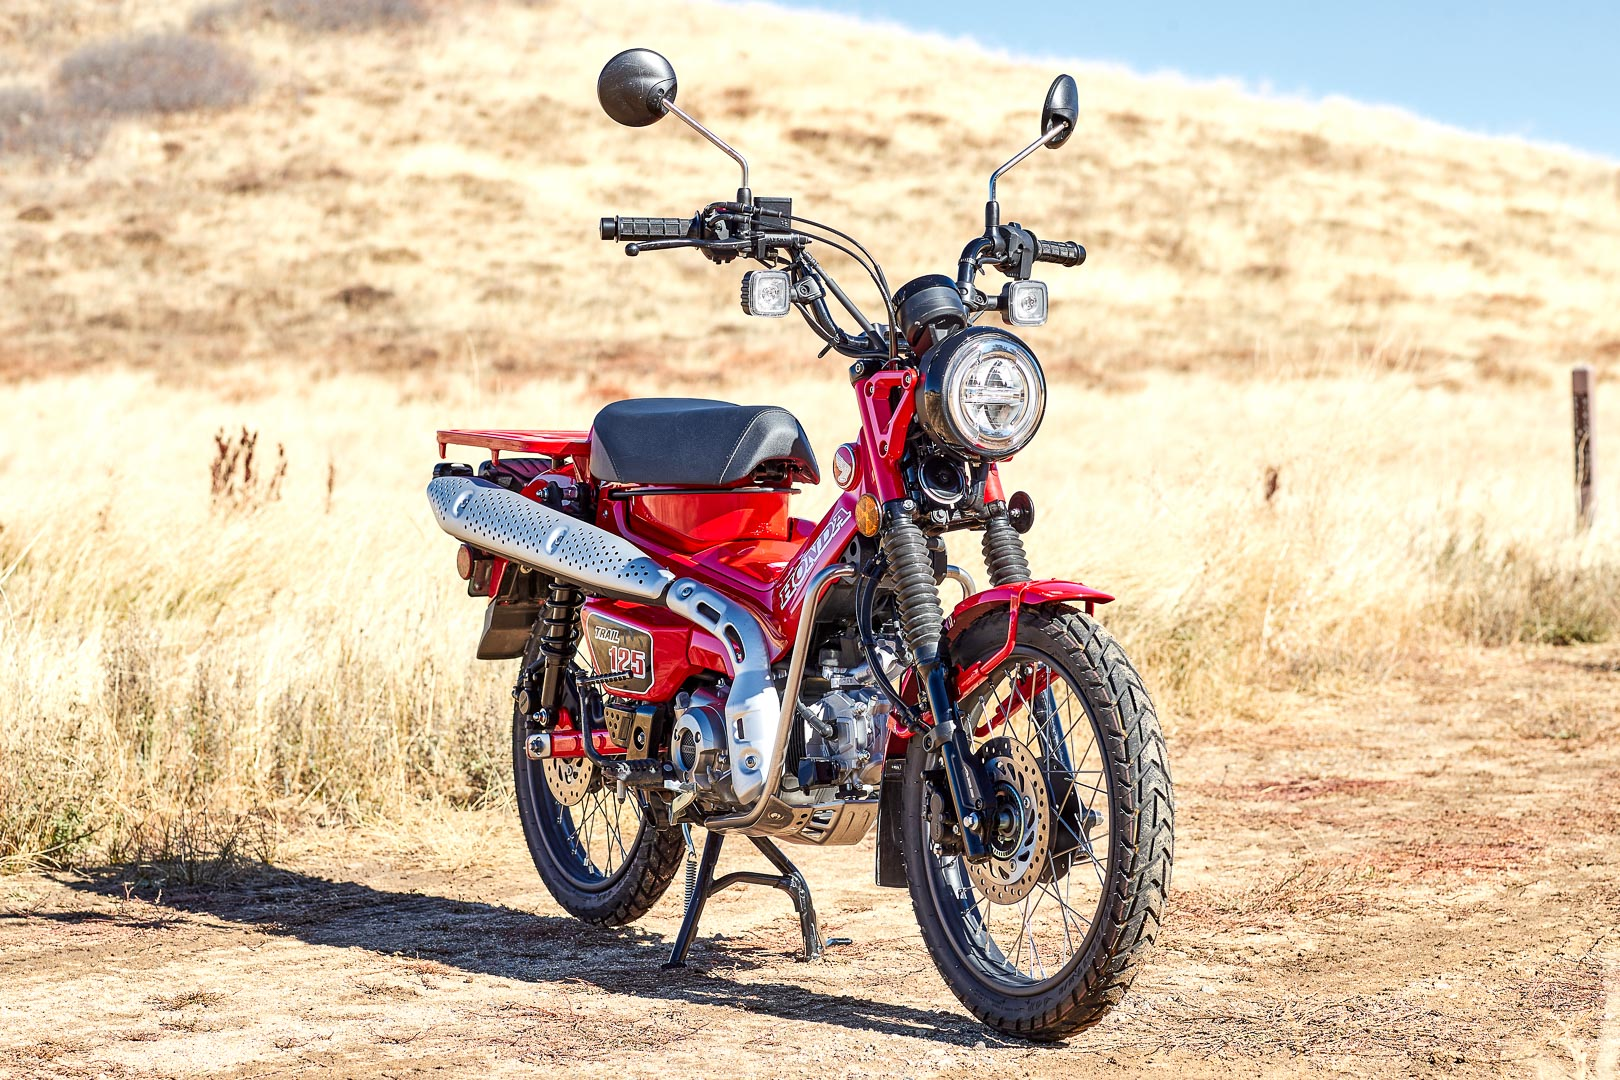 2021 Honda Trail 125 ABS Review: Trail Bike Motorcycle